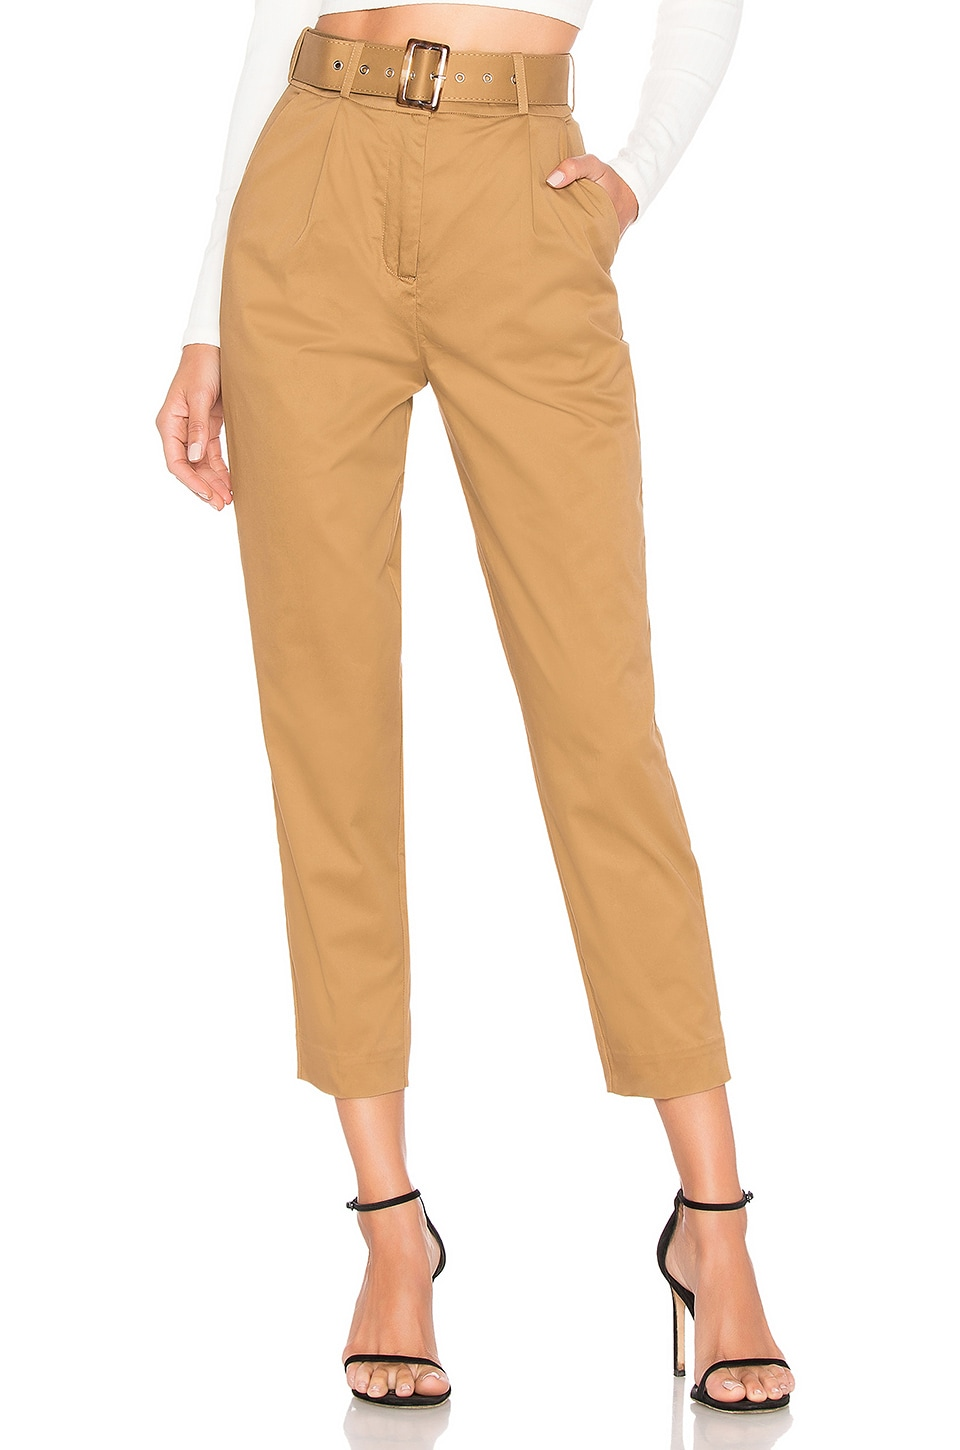 MAJORELLE Charles Pant in Camel